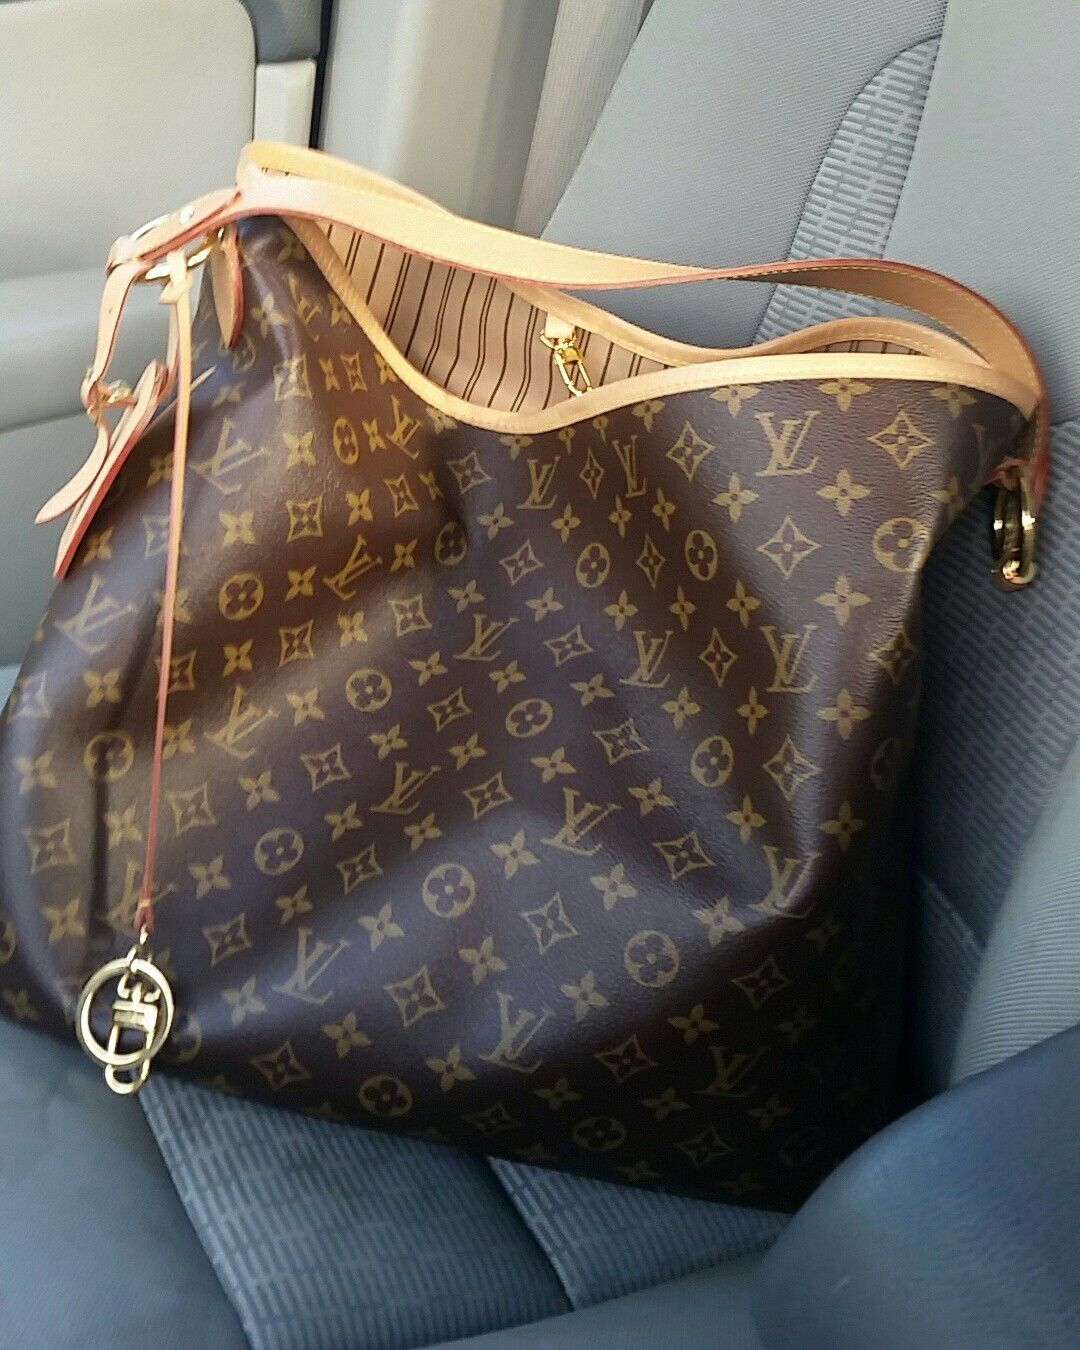 80ef7f761986 2018 Latest For Styling Tips, Pay Western Union Get Discount, Buy More  Discount More, Shop Now! Louis vuitton delightful gm ...